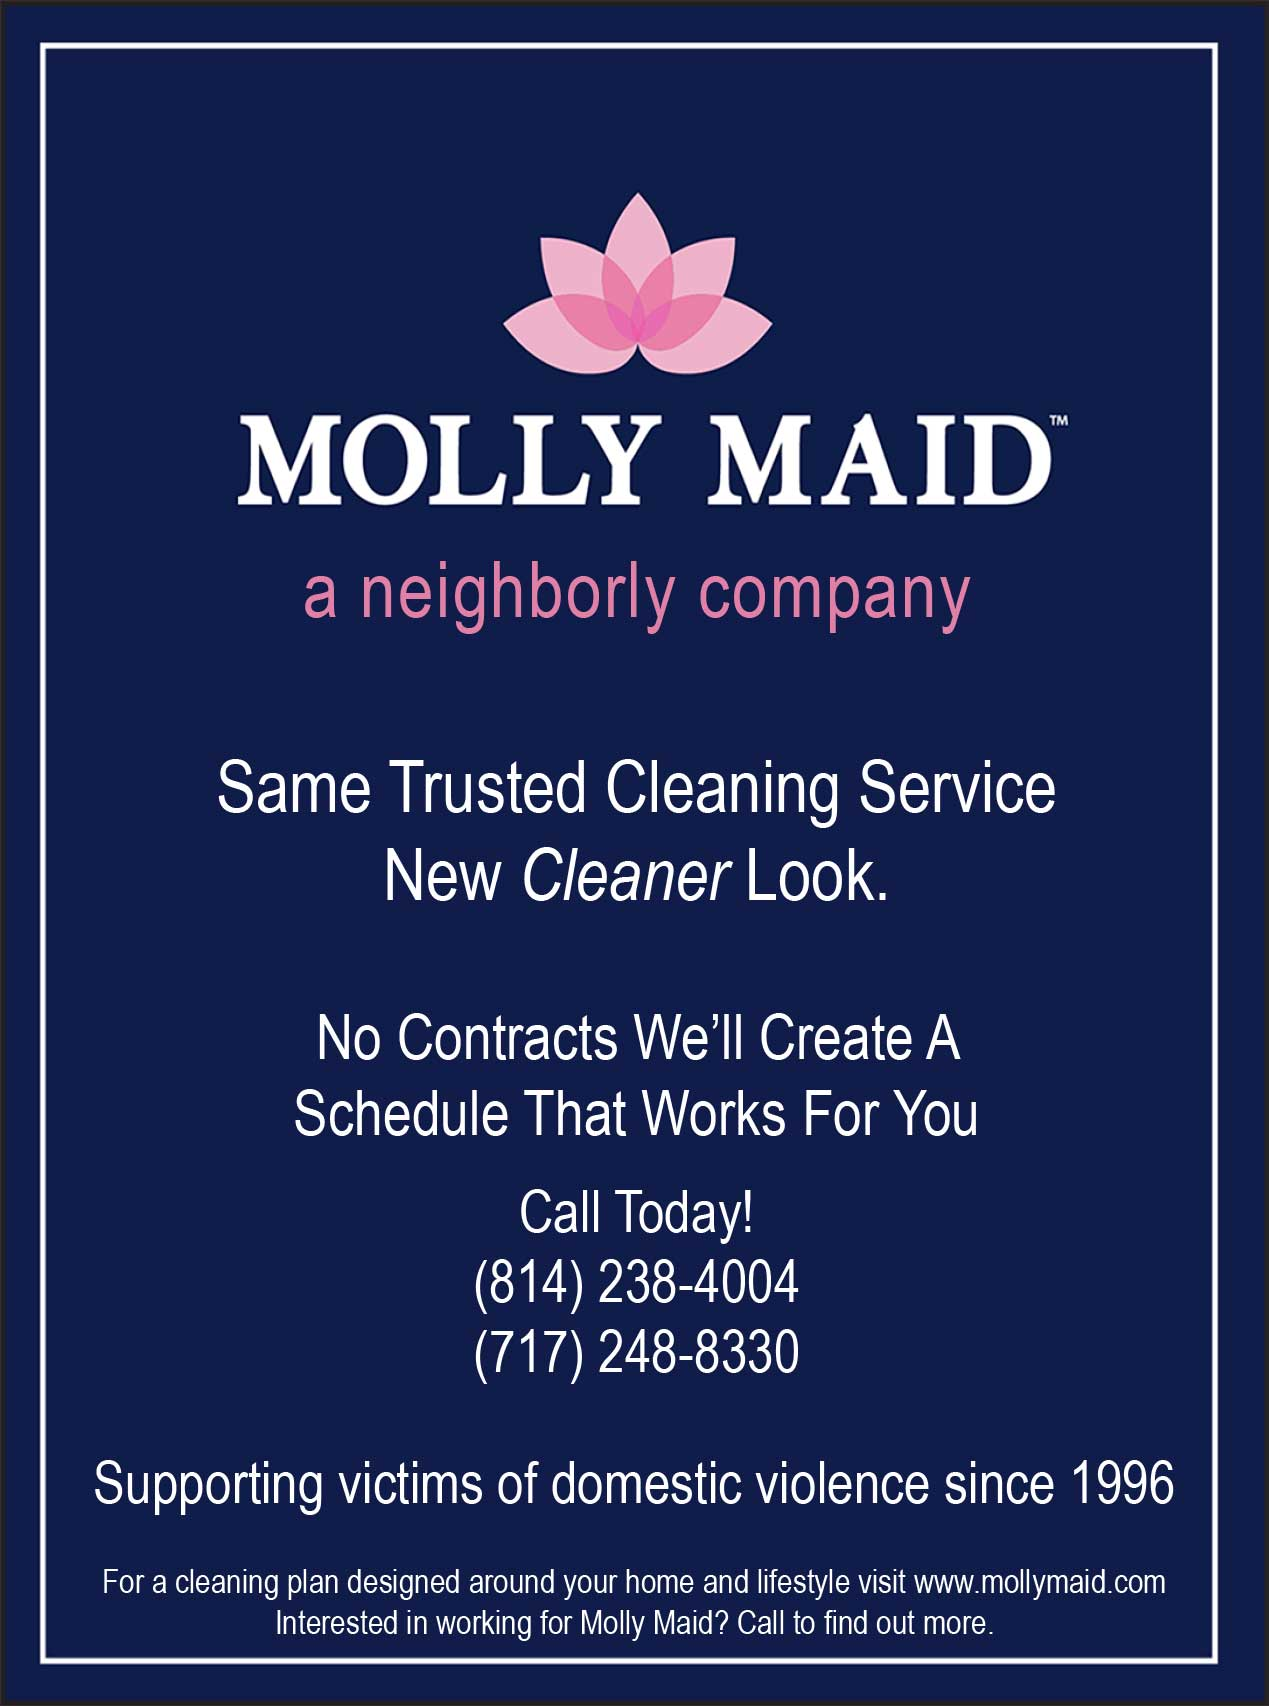 "<center>Molly Maid | <b><a href=""https://www.mollymaid.com"" target=""_blank"" rel=""noopener noreferrer"">CLICK HERE to view the website</a></b></center>"